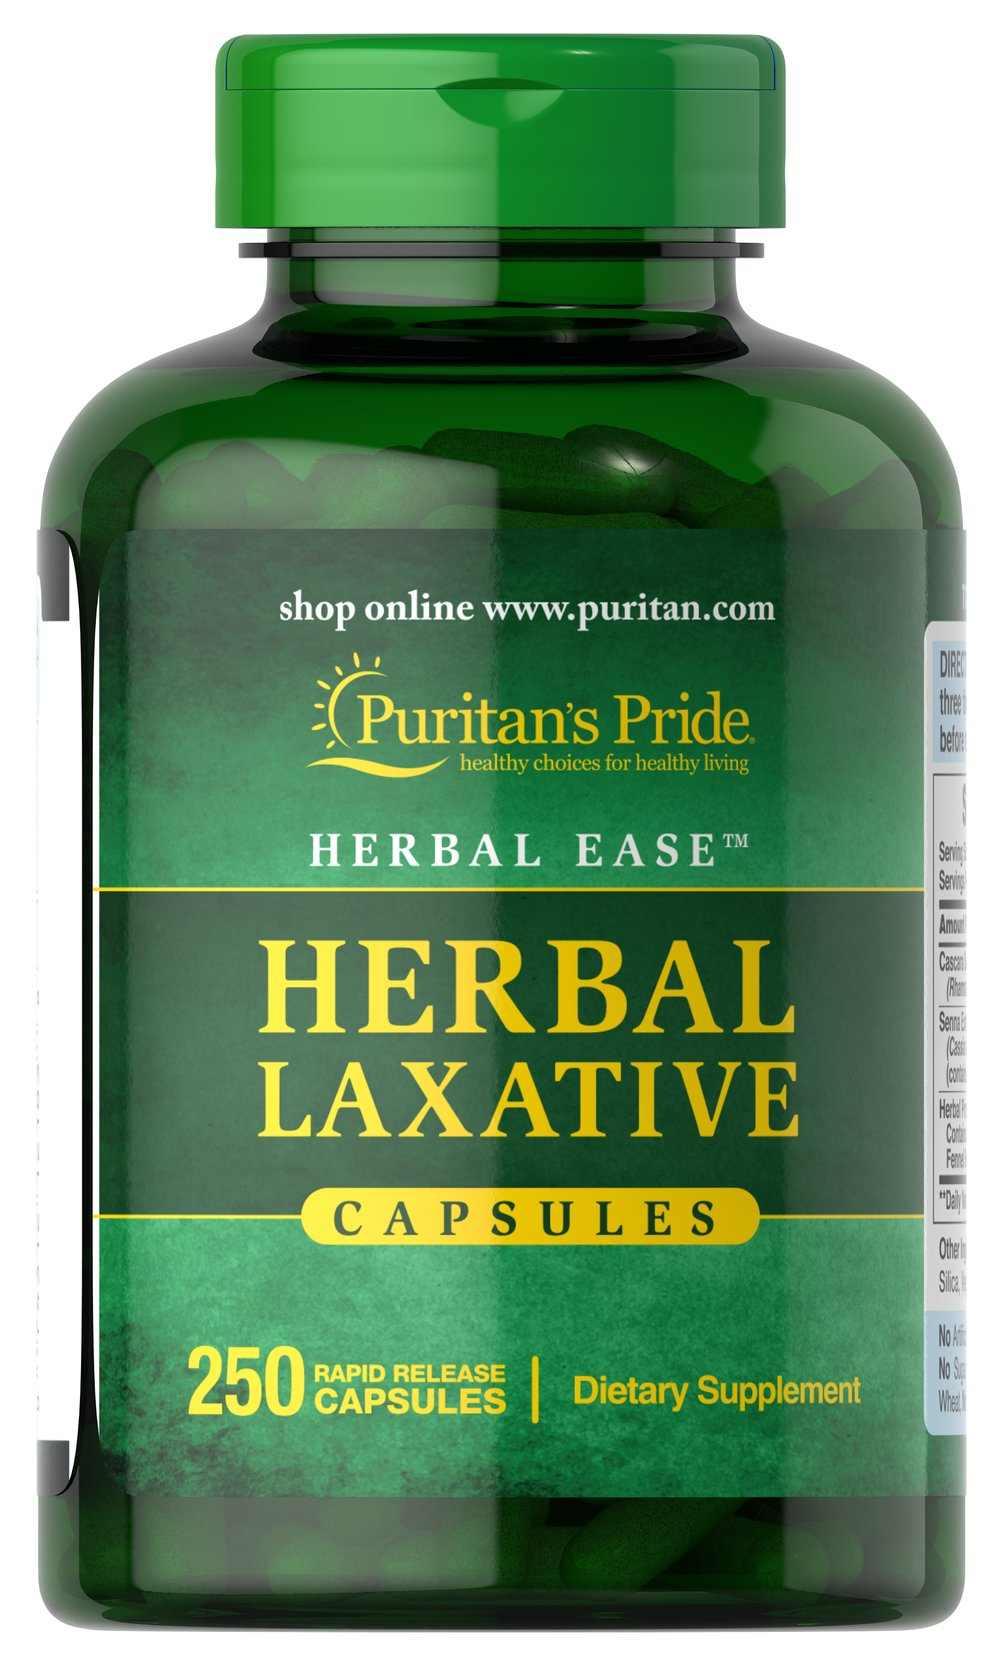 Herbal Laxative <p>Herbal Laxative Tablets is based on traditional use for the relief of occasional constipation.** Our formula brings together holistic properties to help promote regularity.** Herbal Laxative Tablets contain no harsh synthetics, so you can be assured of gentle, yet efficient, cleansing.**</p><p></p><p>Also available in Tablets. See items #30329, 30330 and 30331.</p> 250 Capsules  $25.99